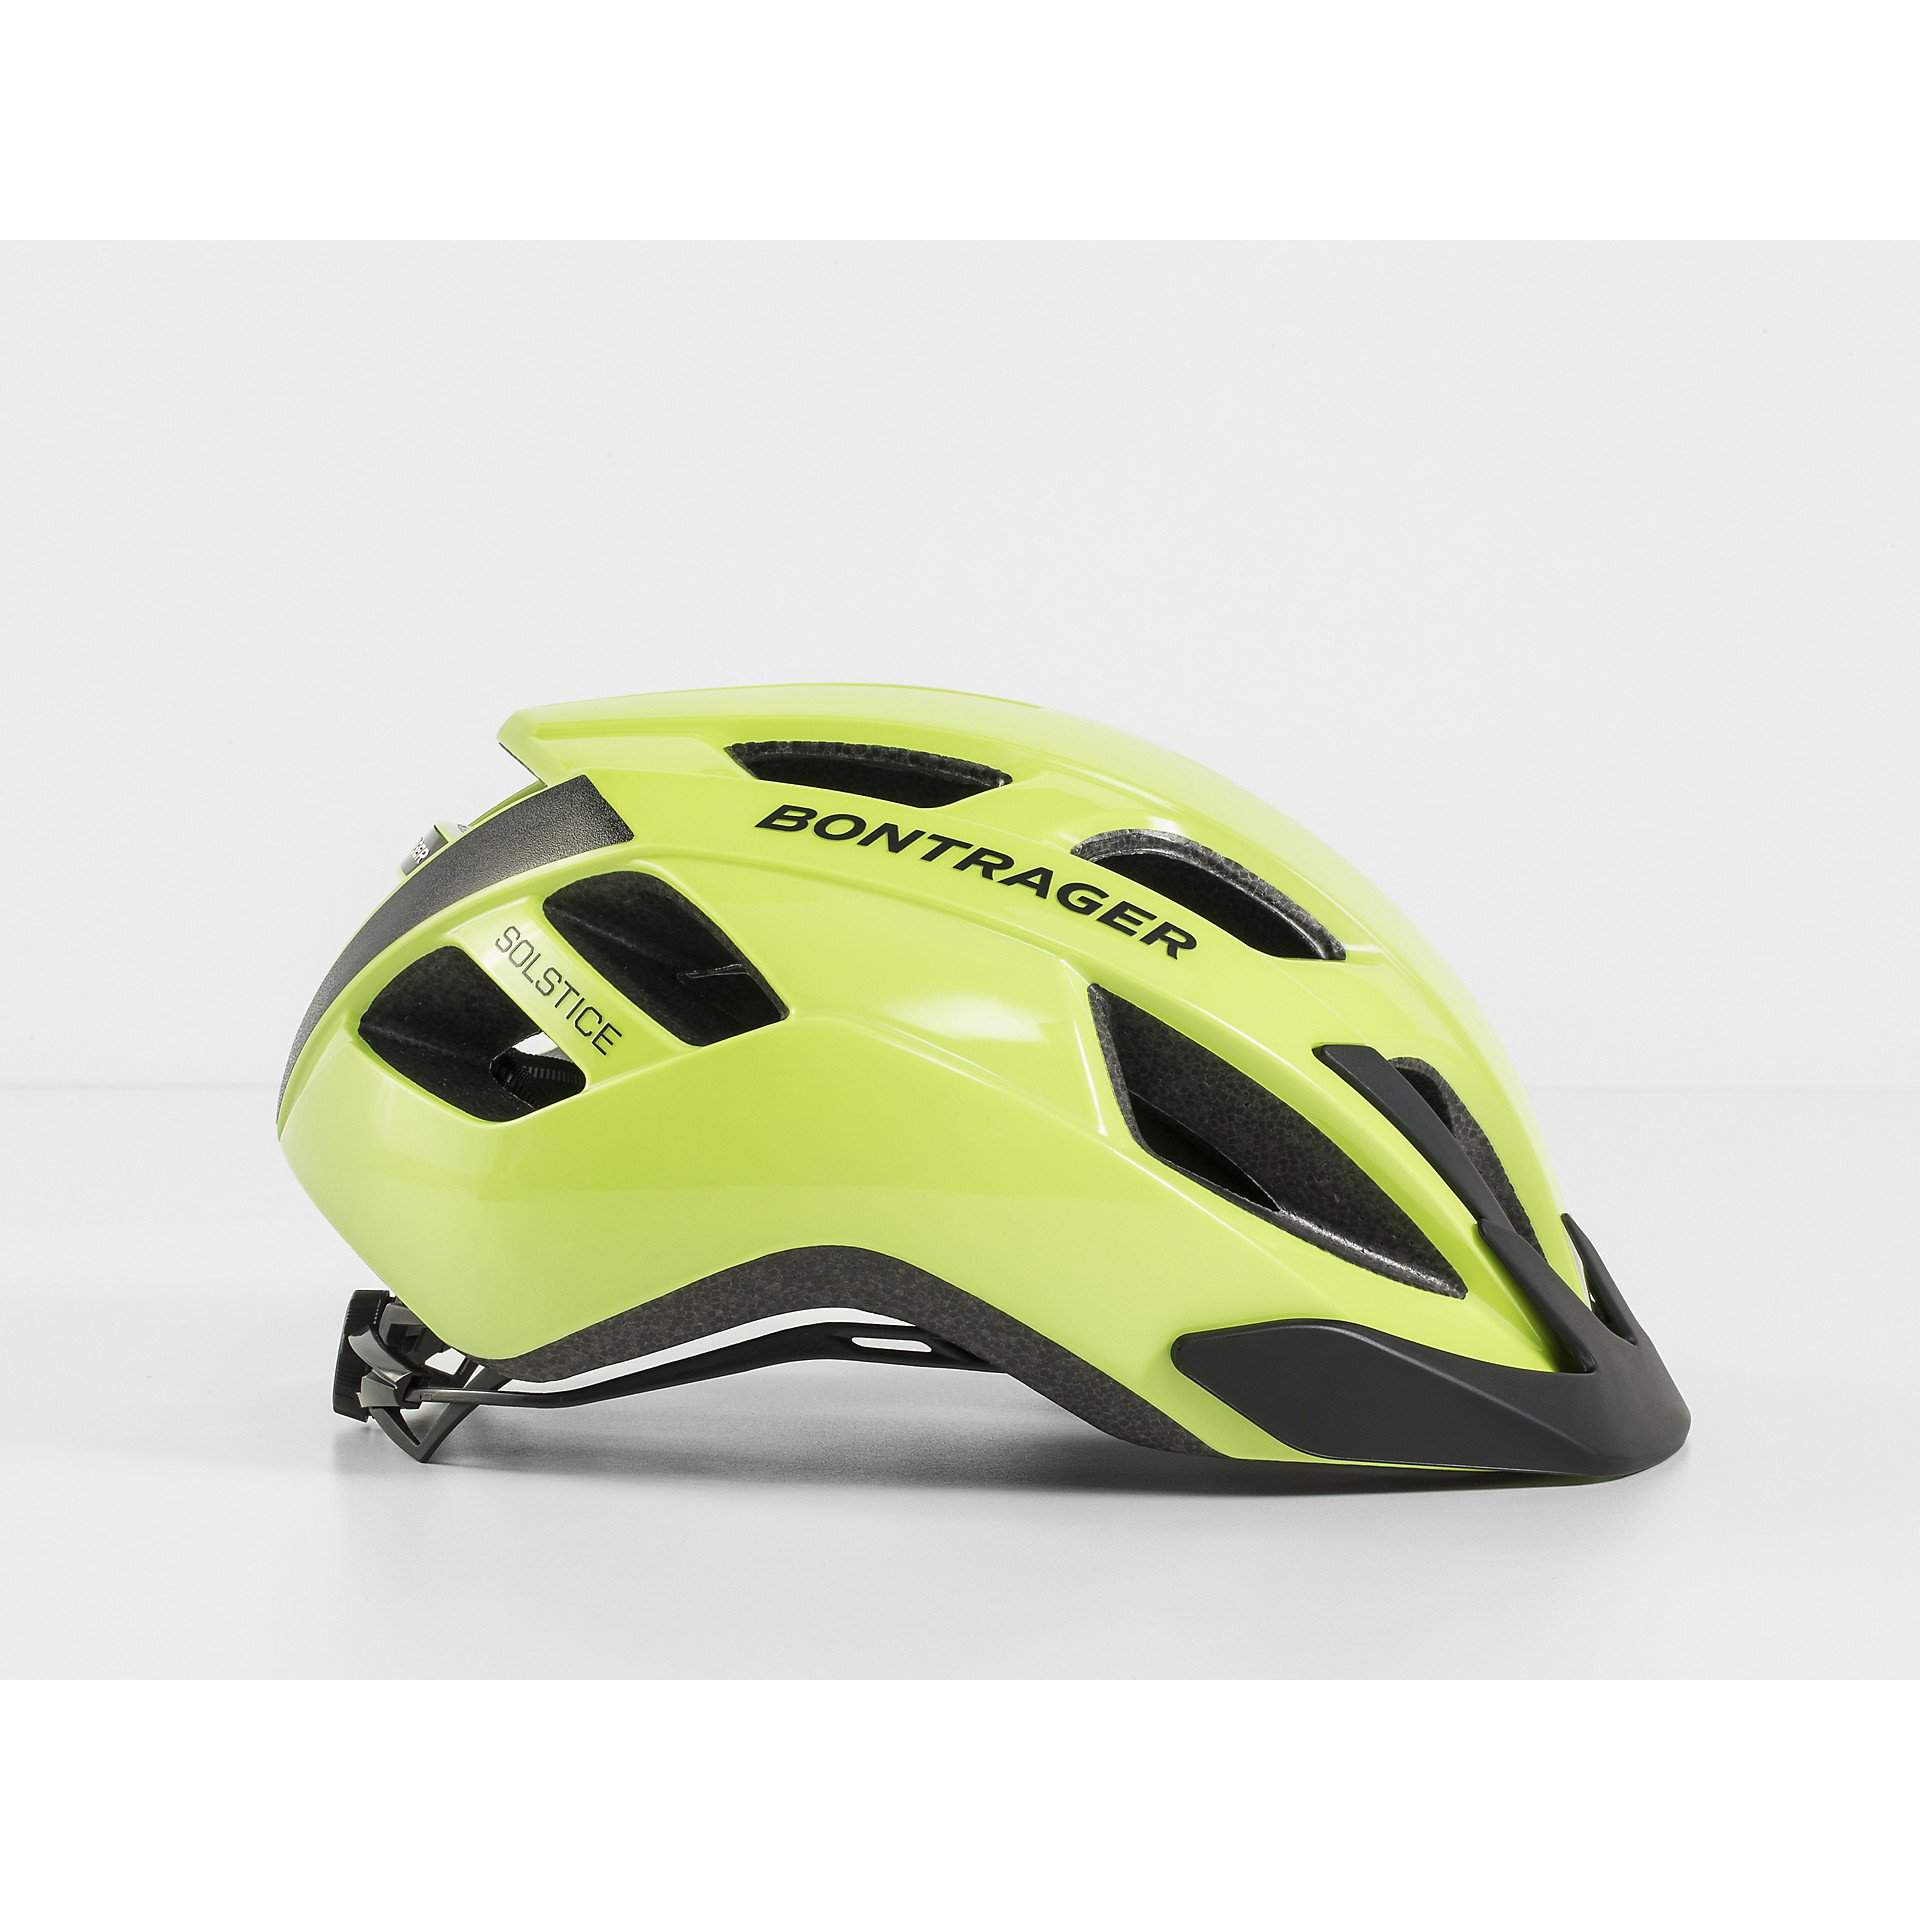 KASK ROWEROWY BONTRAGER SOLSTICE VISIBLE YELLOW Z BOKU